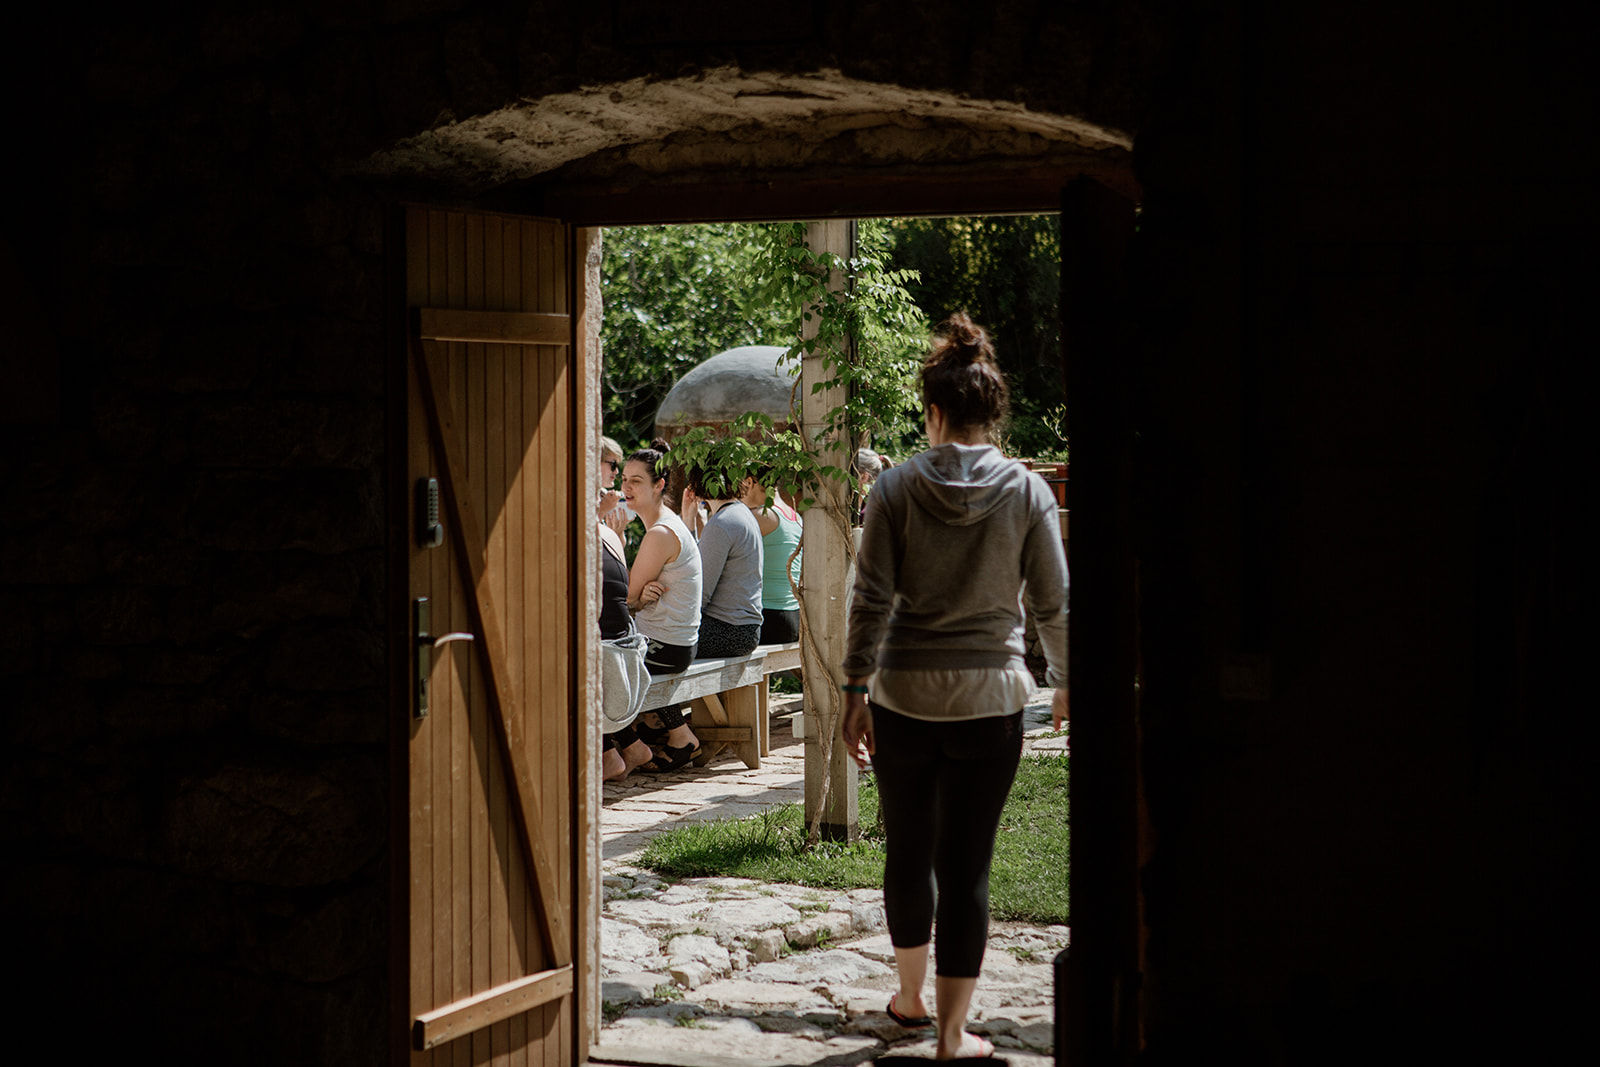 person walking out door to people seated outside - hiking yoga holiday montenegro